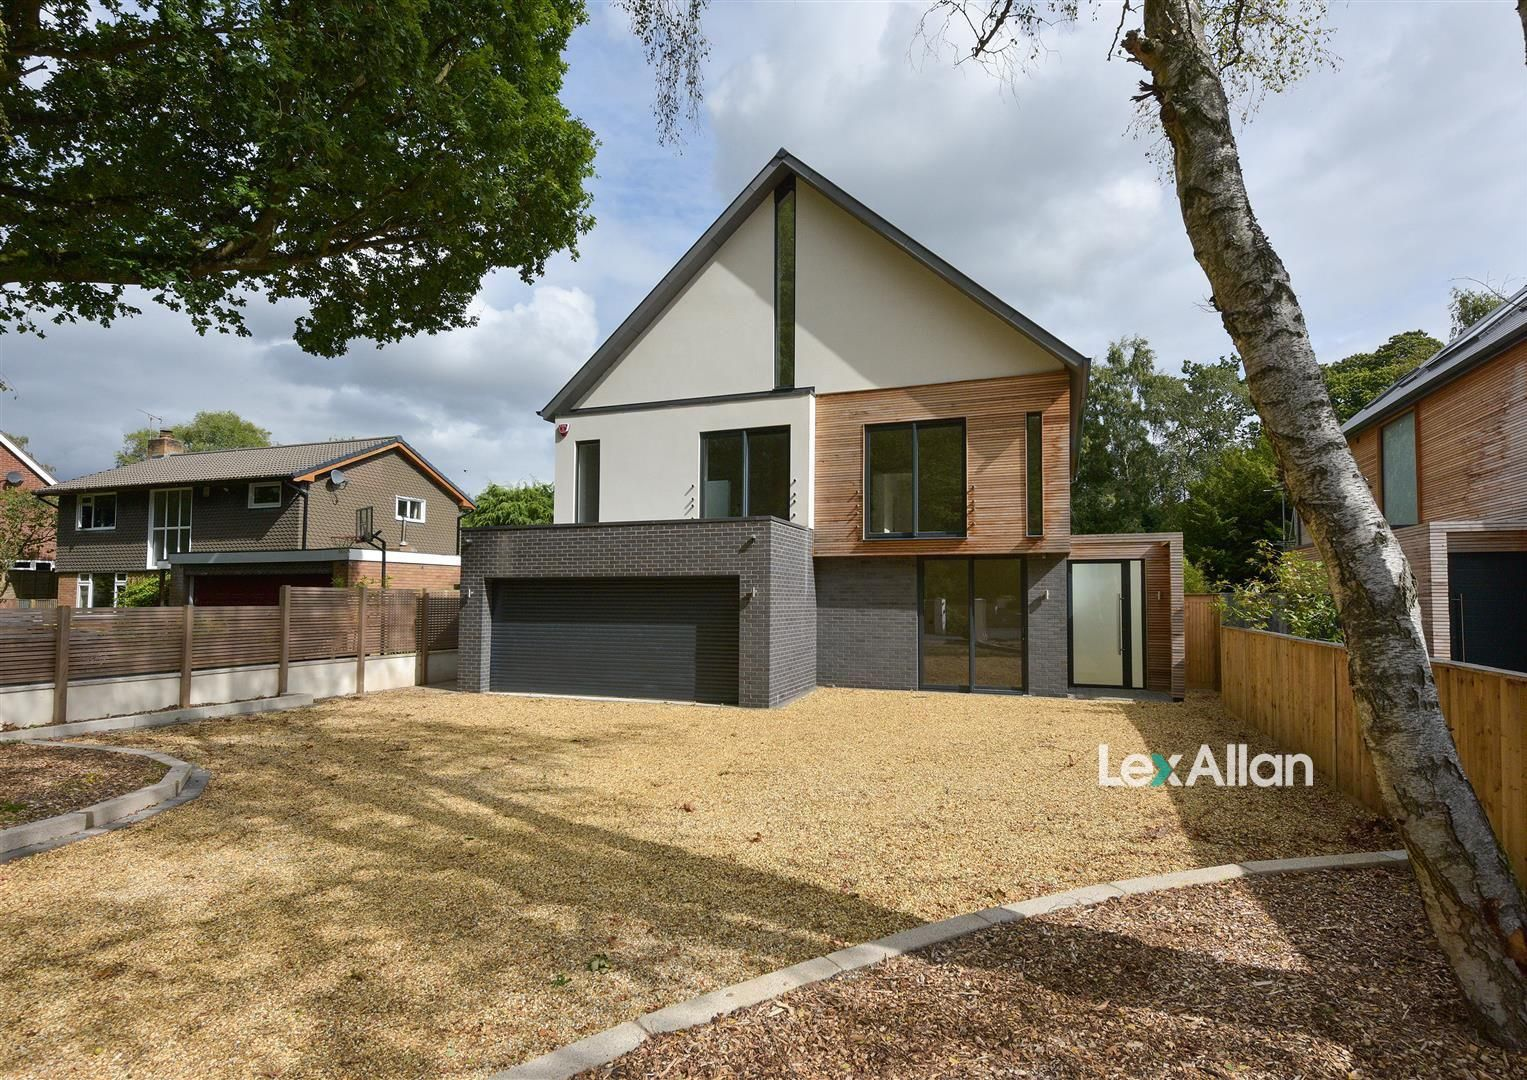 6 bed detached for sale, DY7